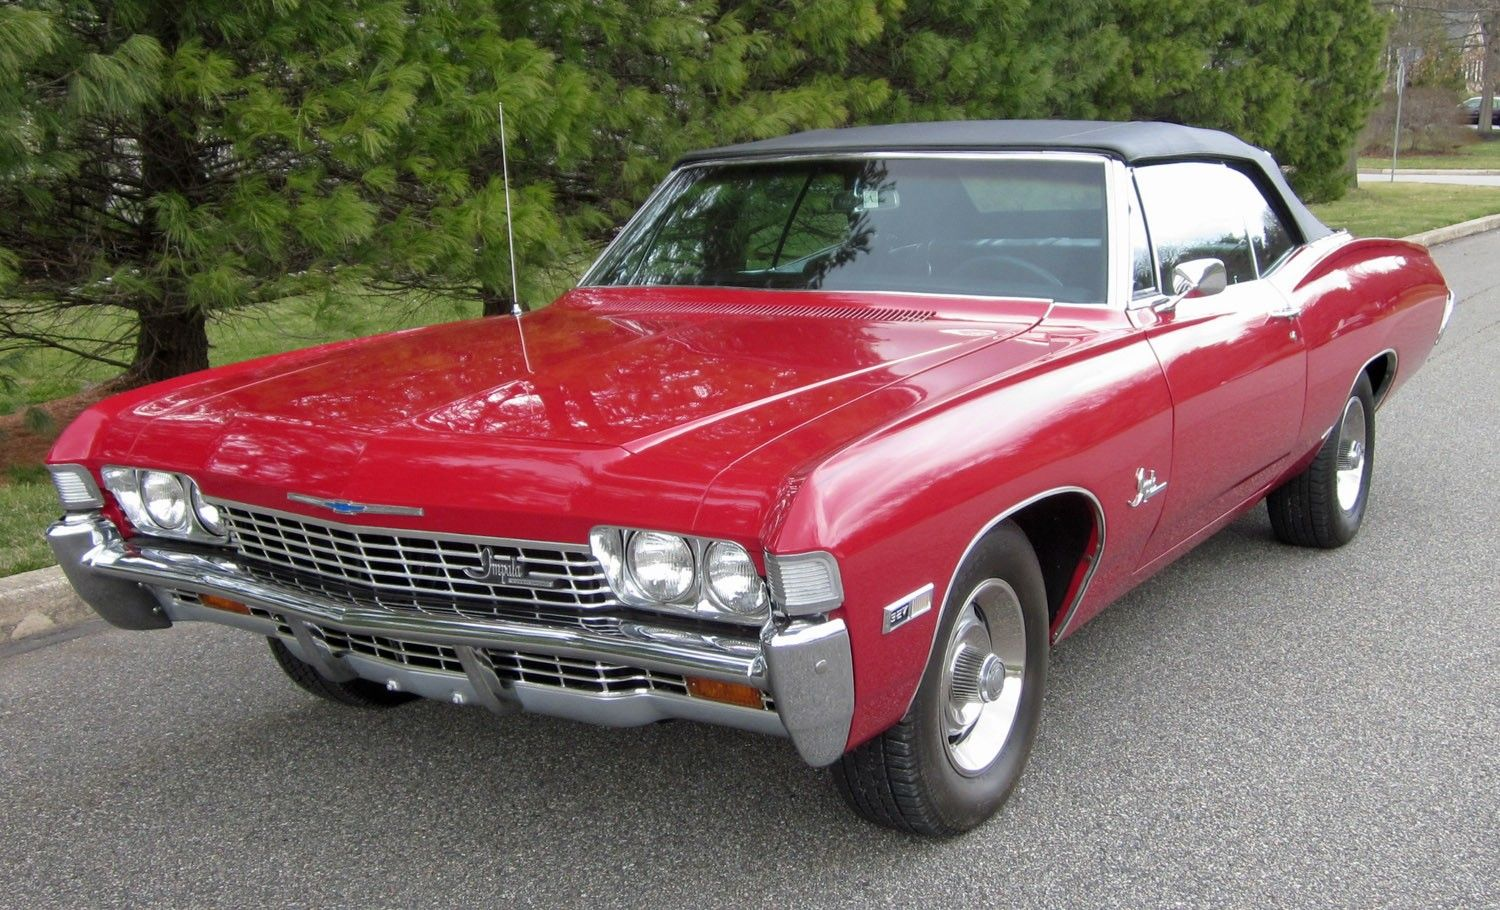 1968 chevrolet impala ss convertible red